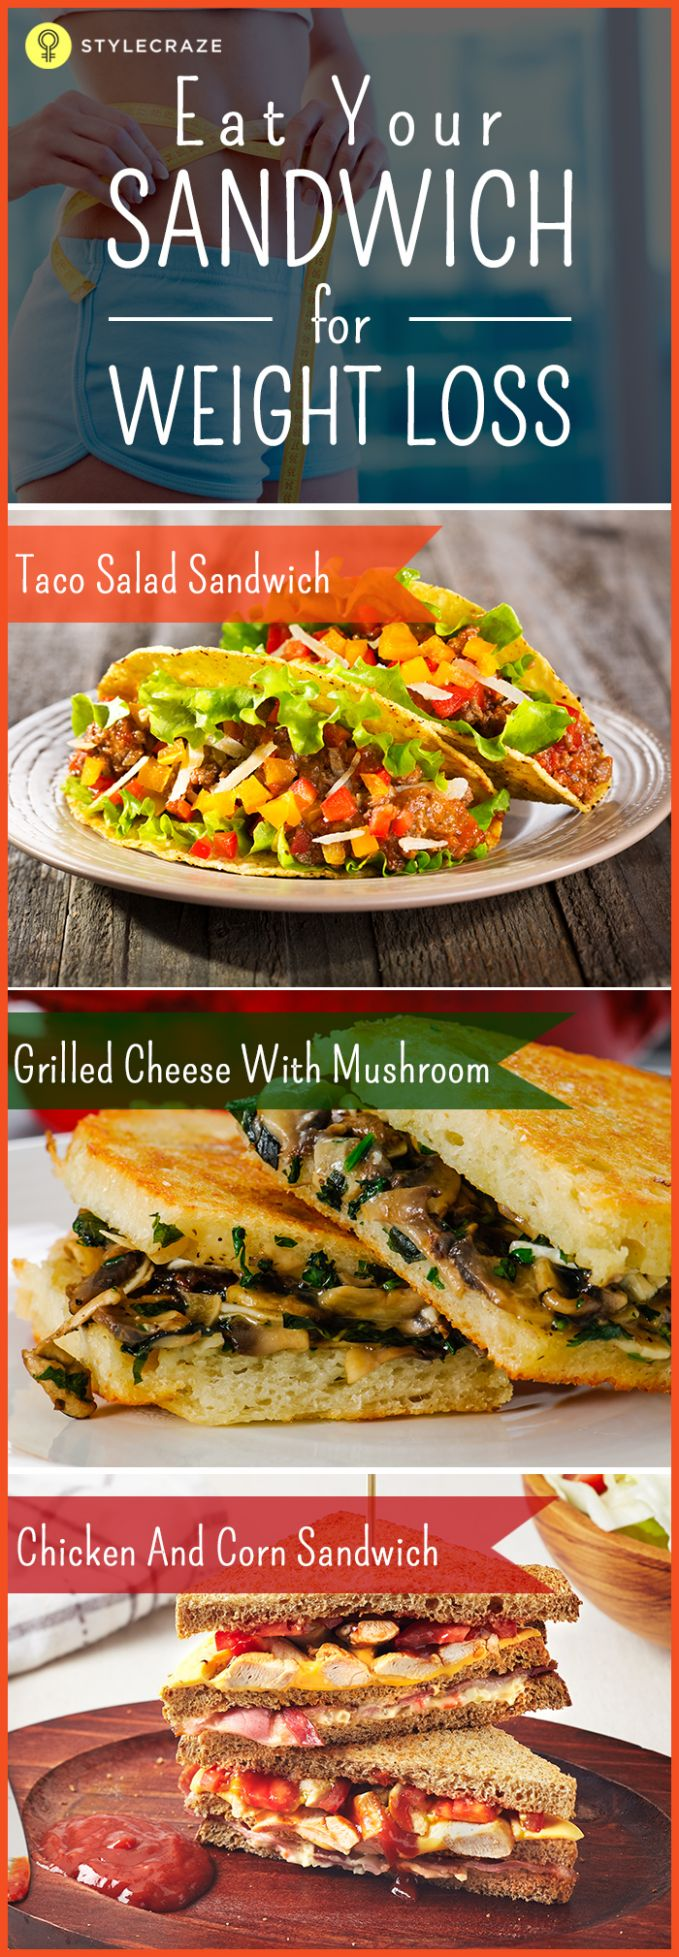 12 Healthy Sandwiches To Help You Lose Weight - Weight Loss Grill Recipes